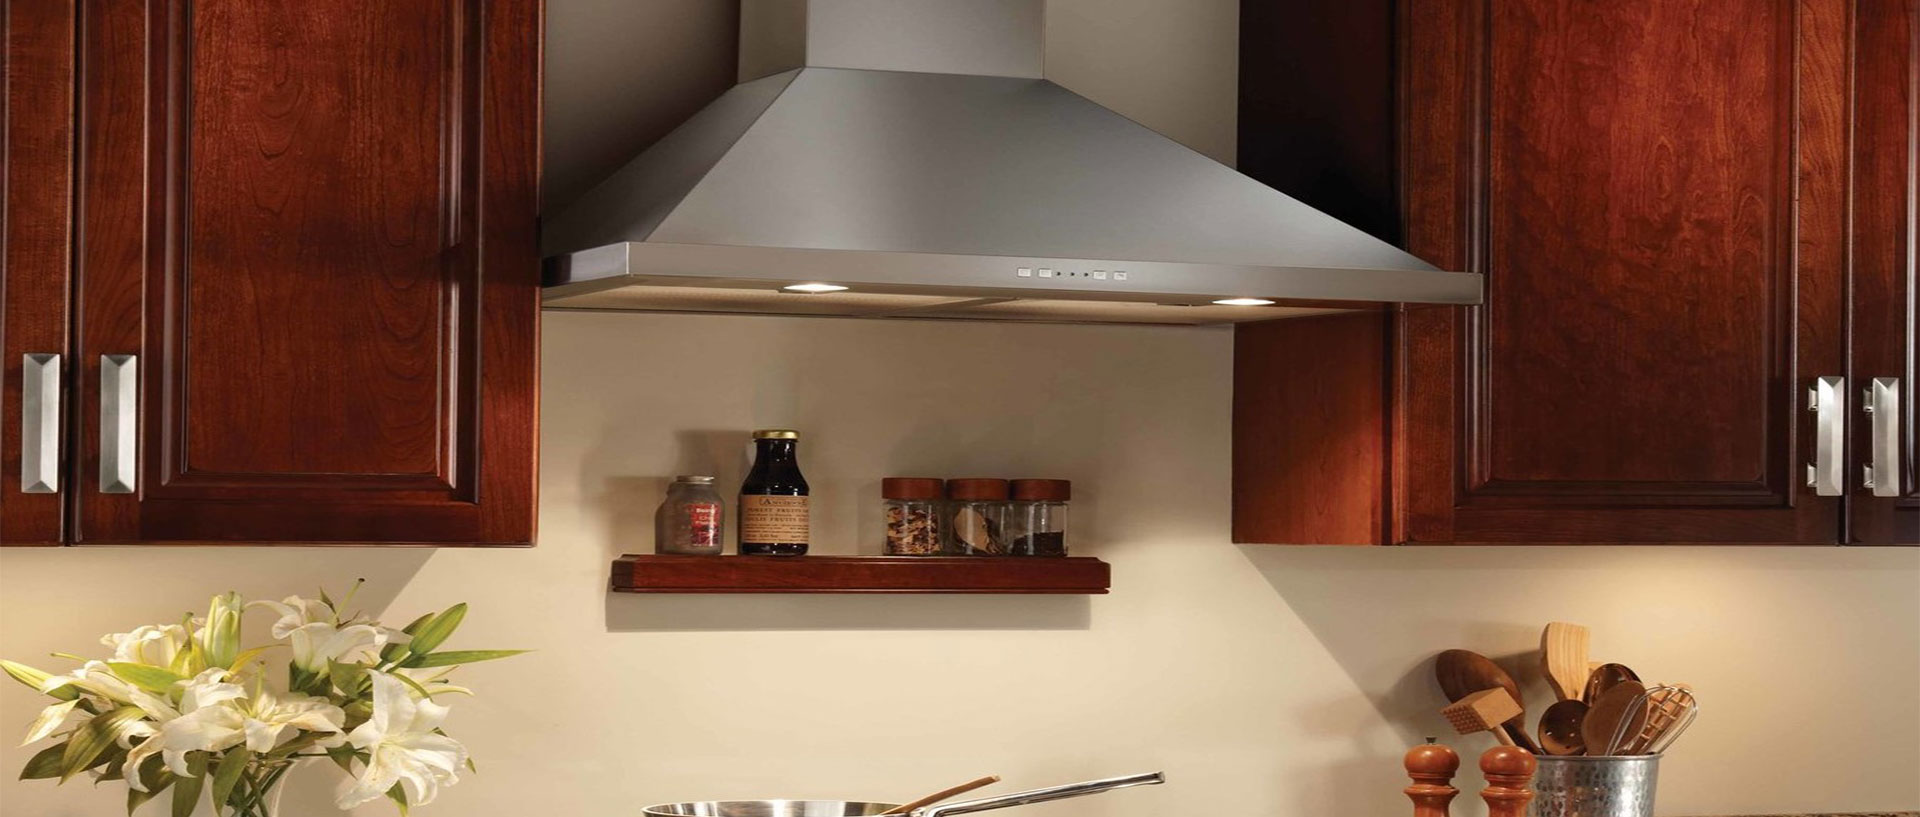 Delightful Some Of Our Most Popular And Most Affordable Internal Blower Range Are  Whirlpoolu0027s Custom Hood Liner That Enables Quiet Airflow For Efficient  Performance.